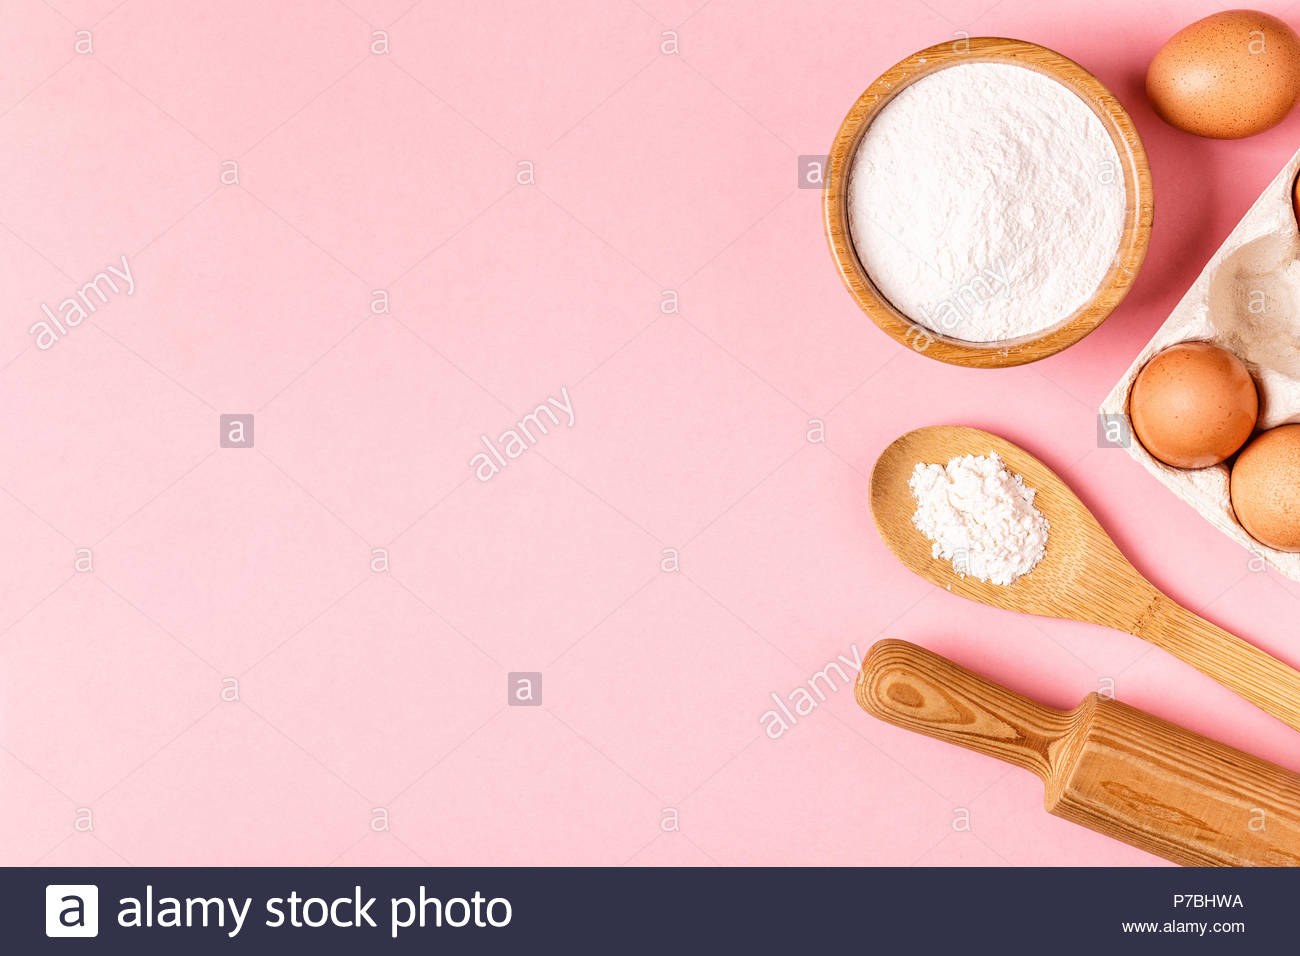 Ingredients and utensils for baking on a pastel background top 1300x956